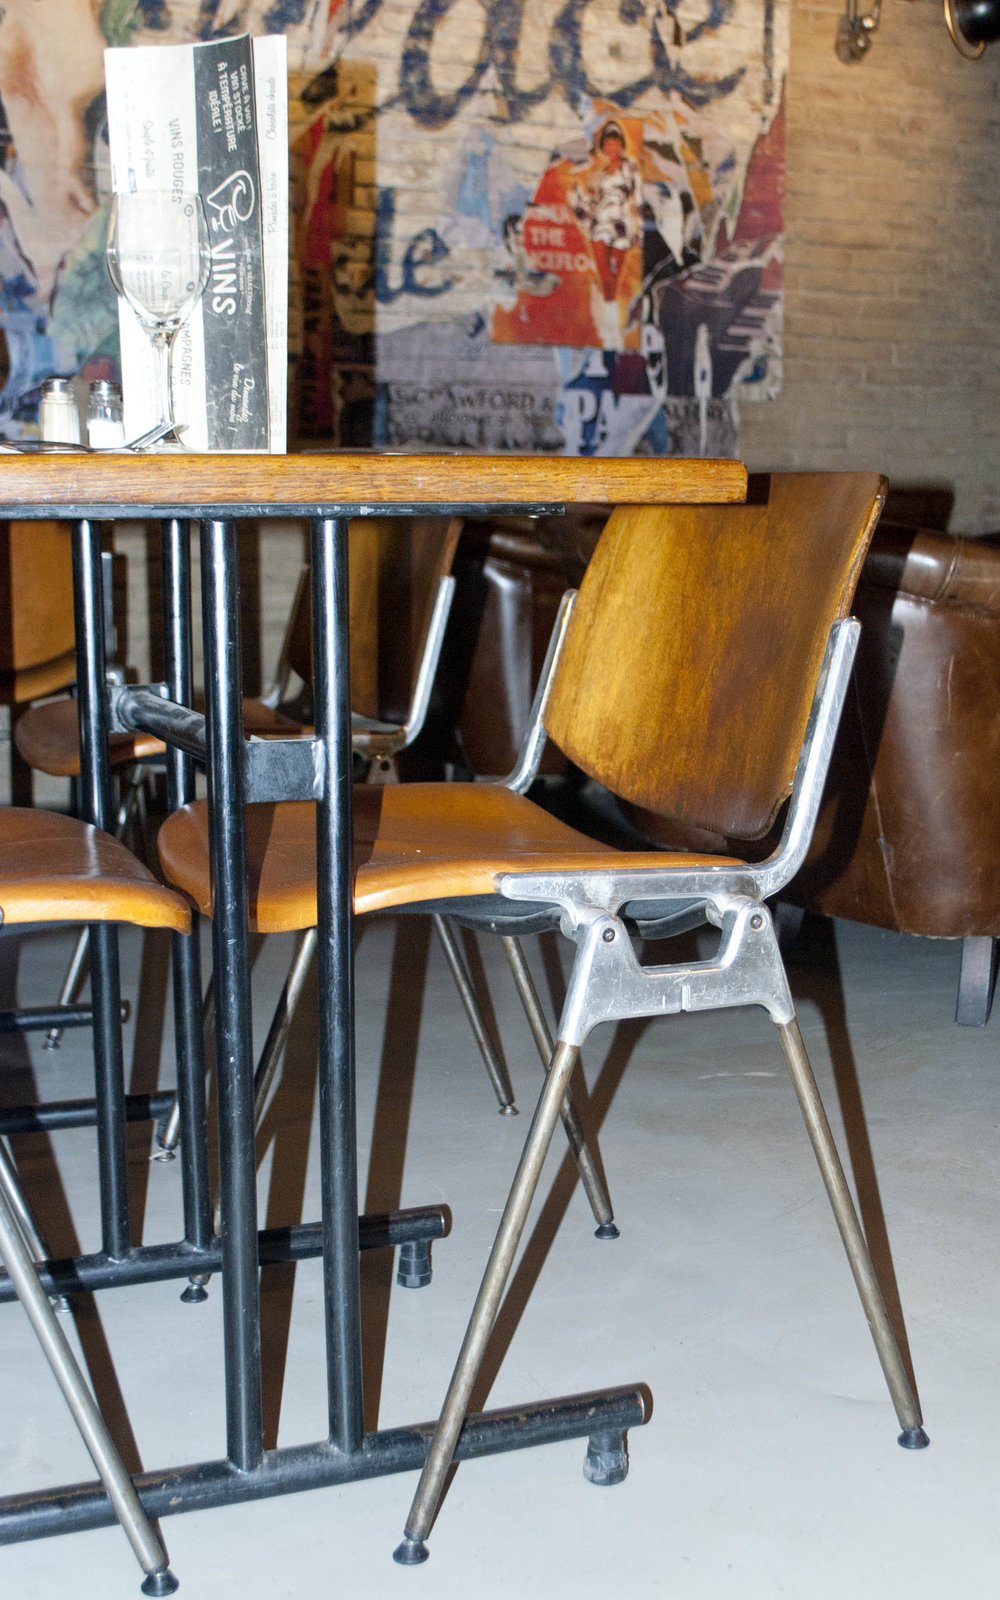 Industrial steel and wood chairs provide robust seating and clean lines. The flooring is kept very basic.